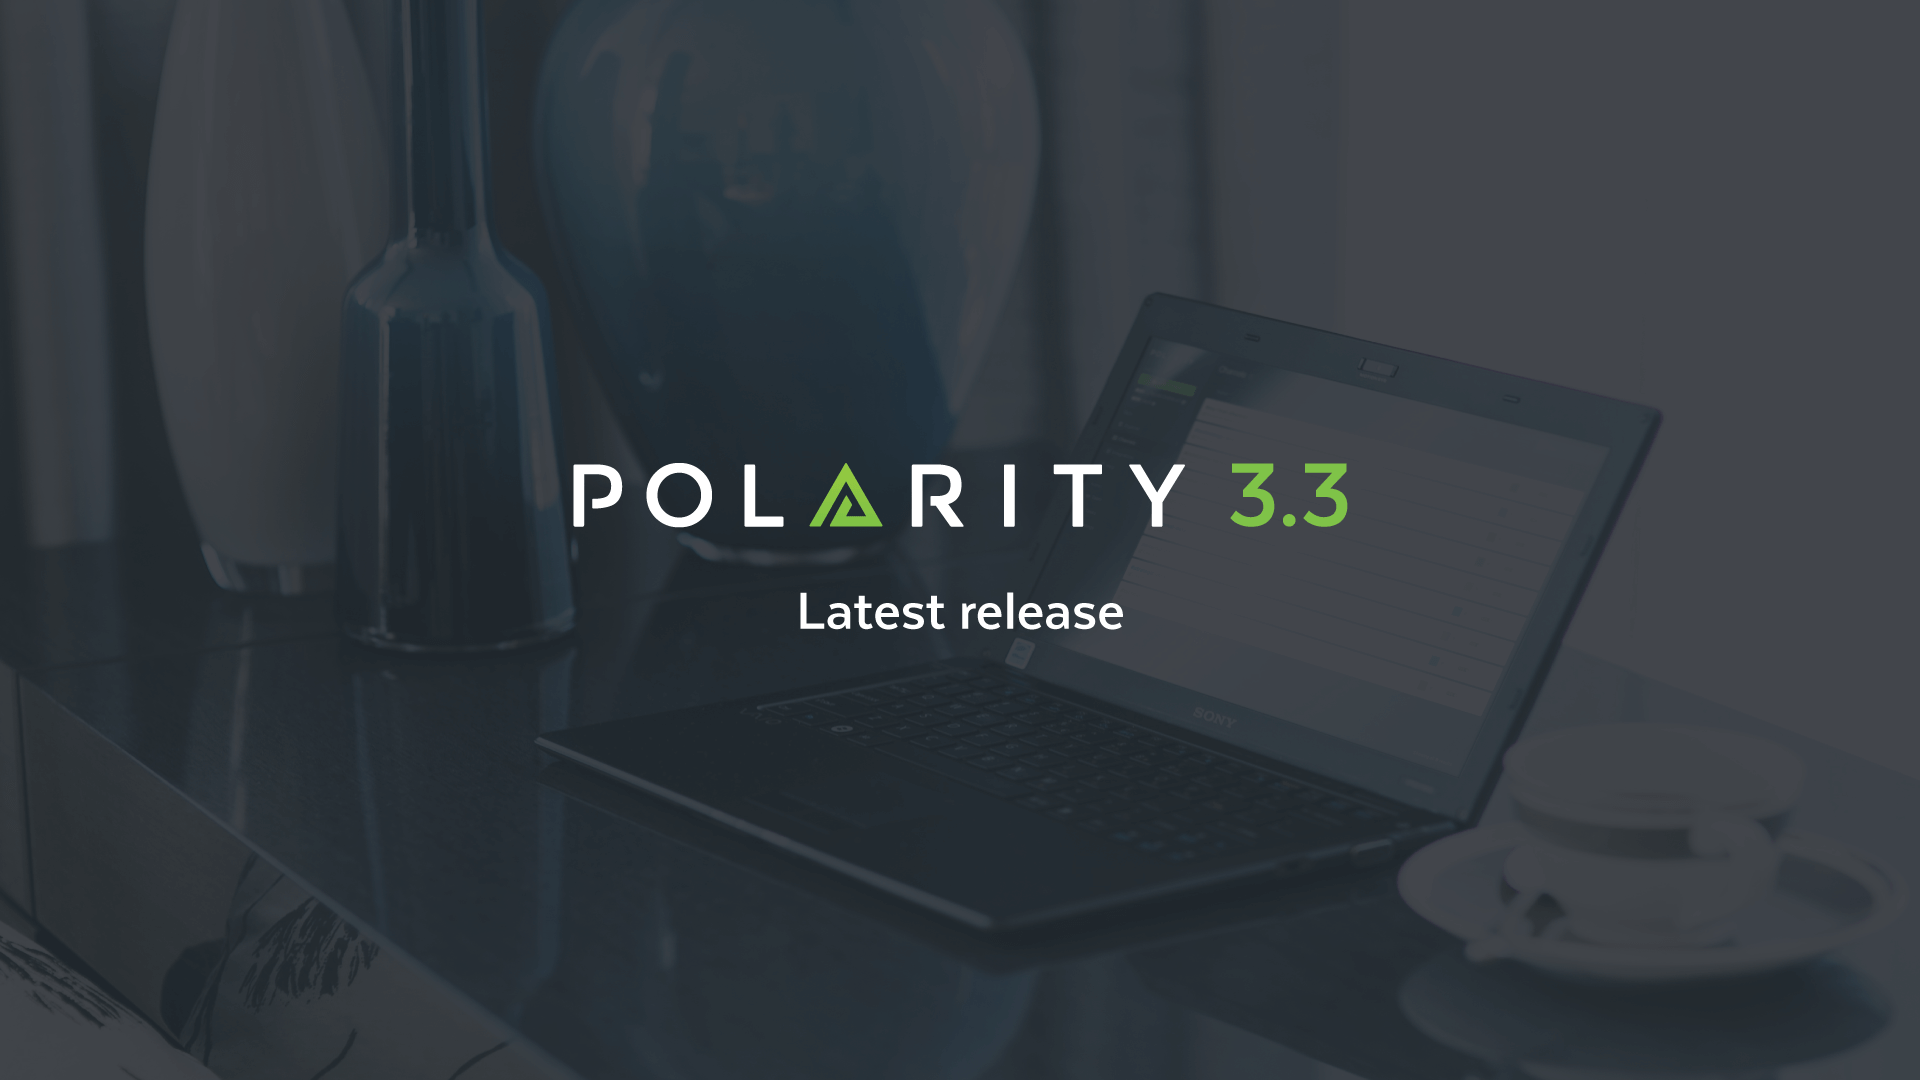 Polarity 3.3 blog cover image